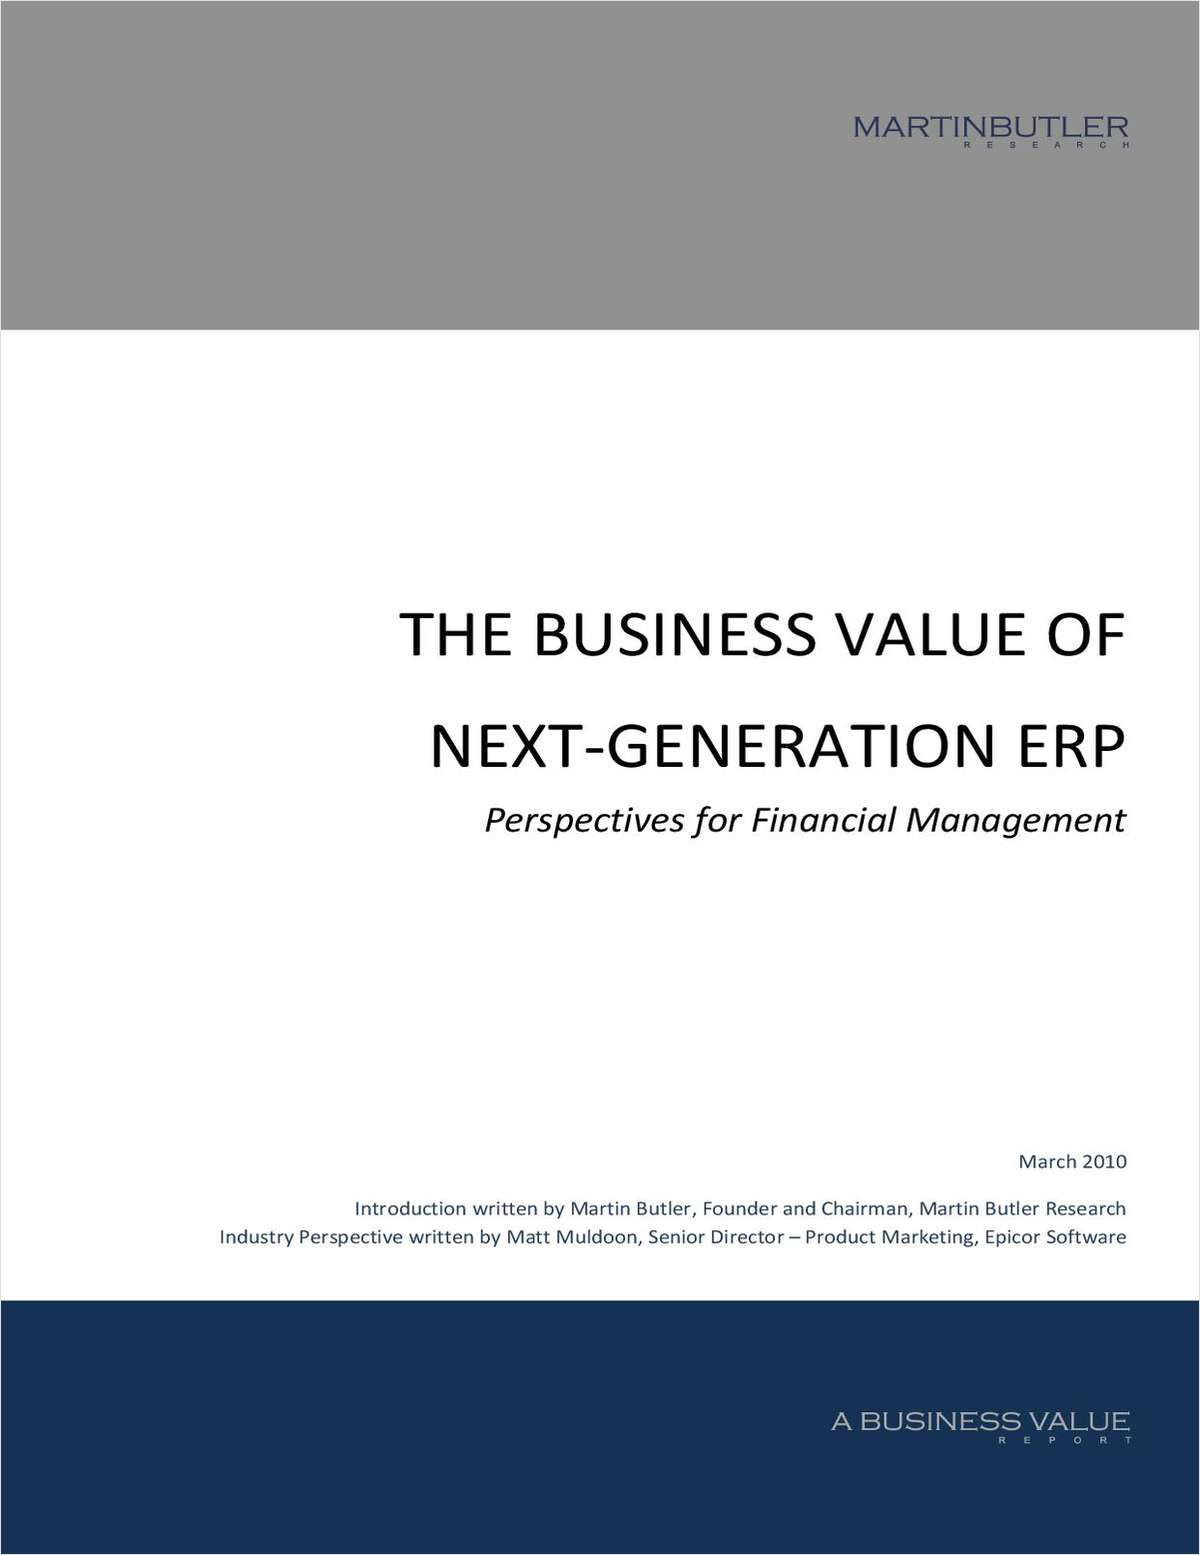 THE BUSINESS VALUE OF NEXT-GENERATION ERP: Perspectives for Financial Management